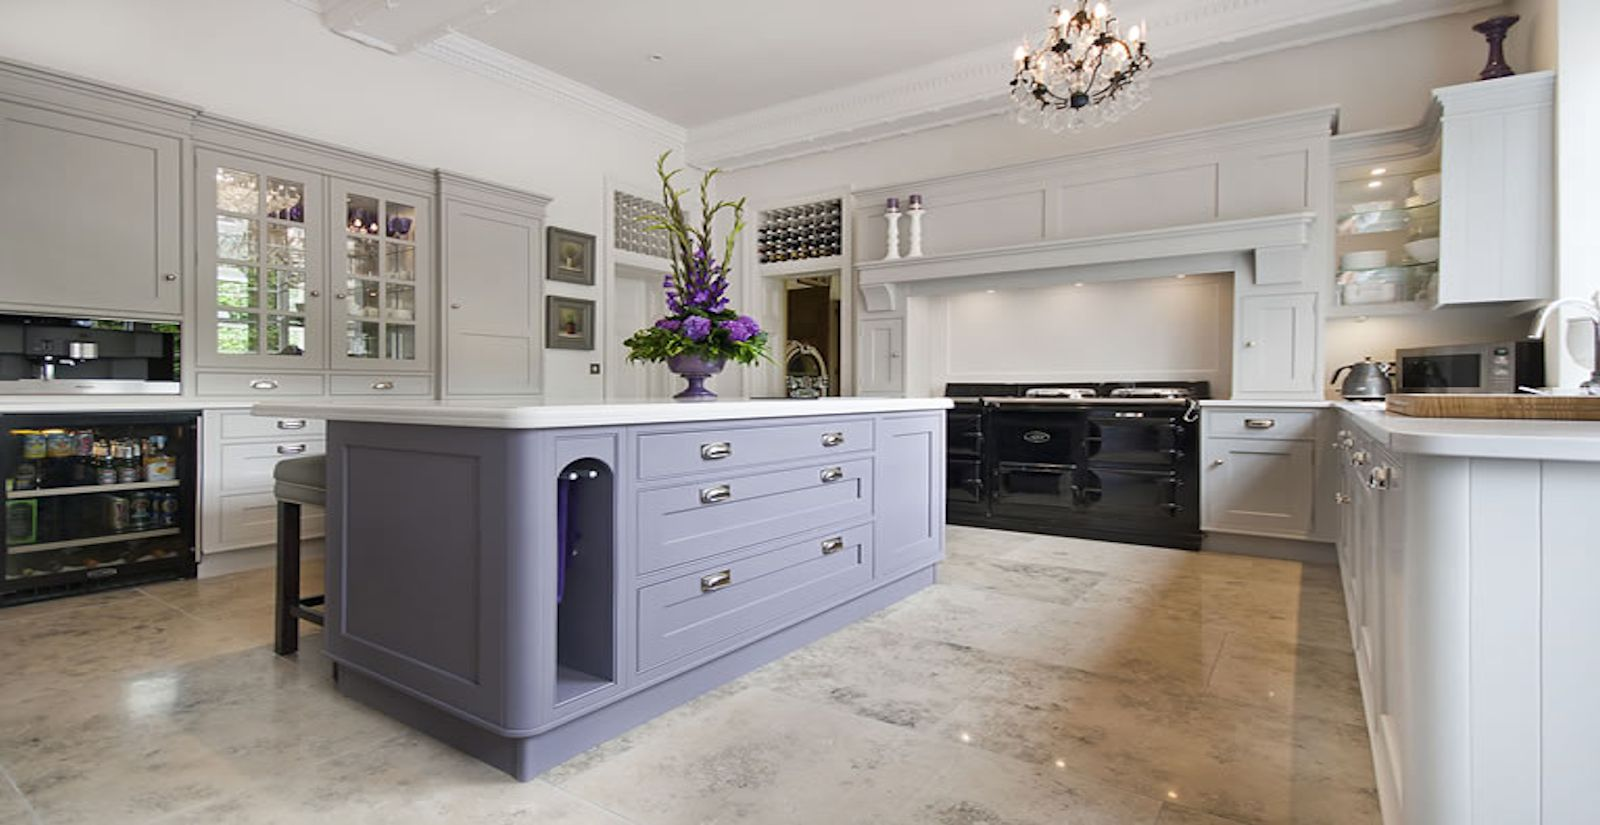 Bon A Beautiful Osbornes Of Ilkeston Hand Painted Kitchen.